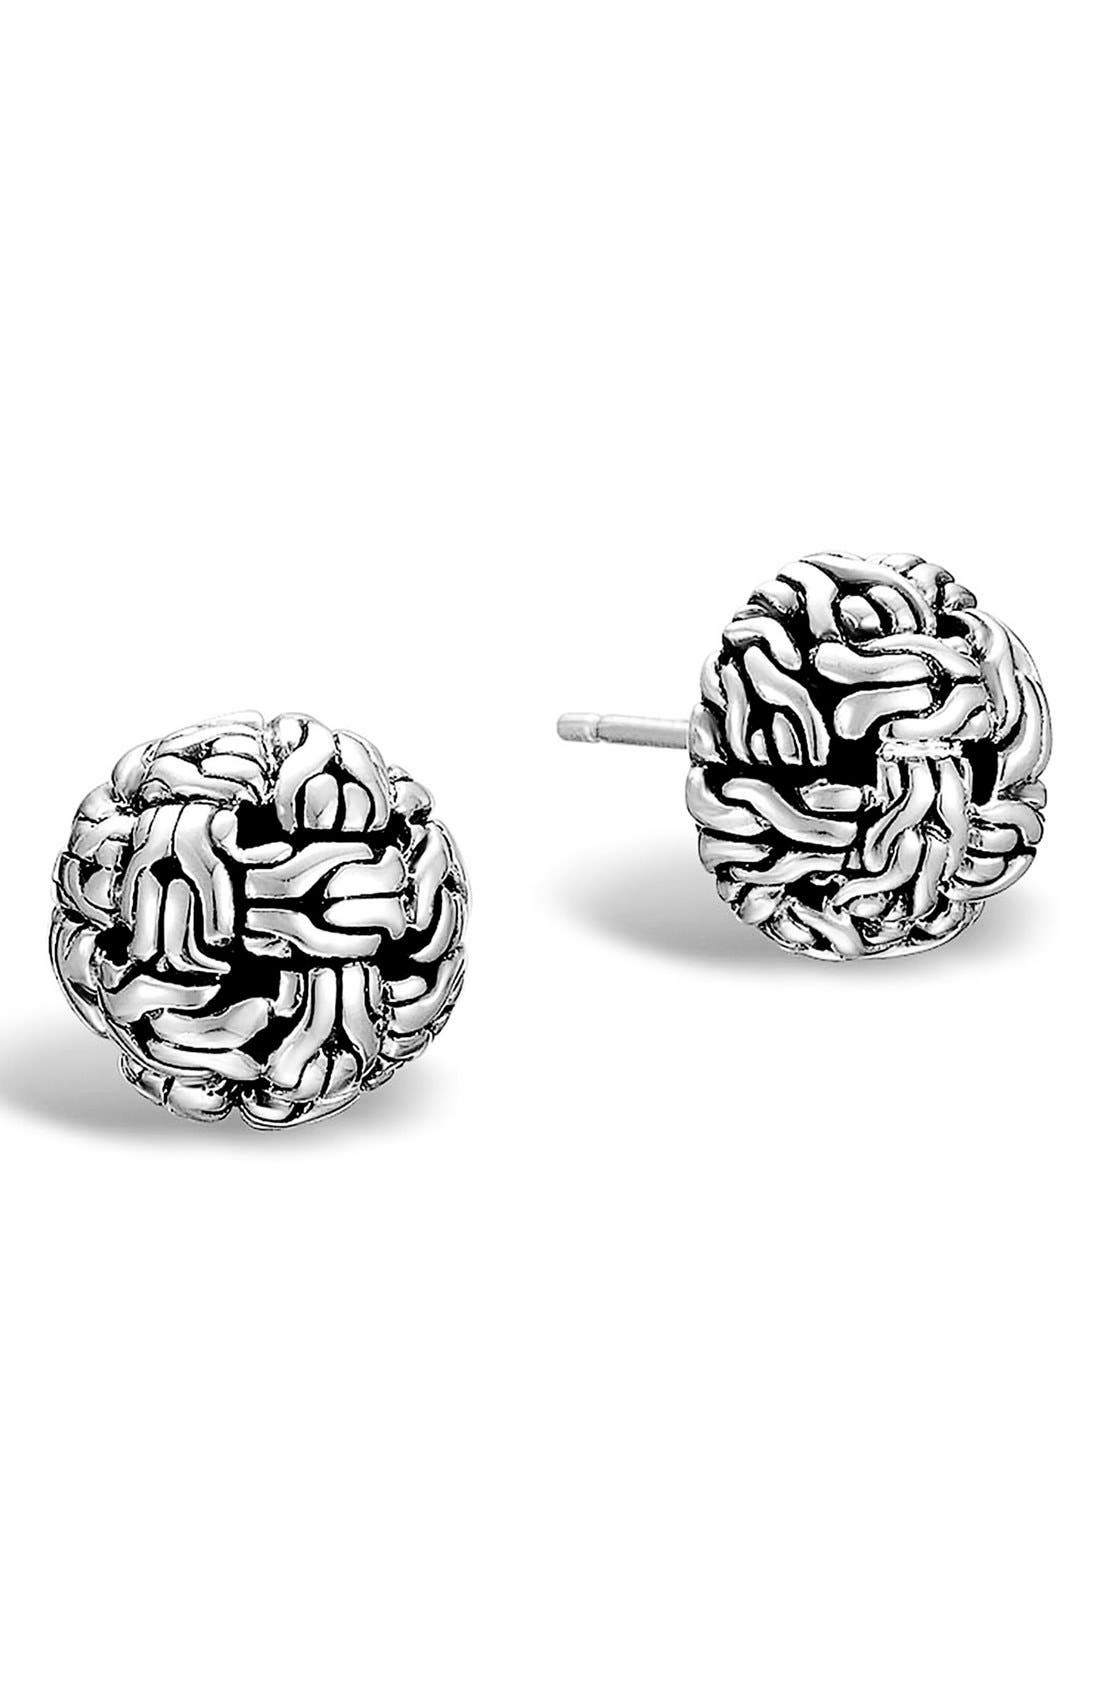 'Classic Chain' Stud Earrings,                             Main thumbnail 1, color,                             STERLING SILVER